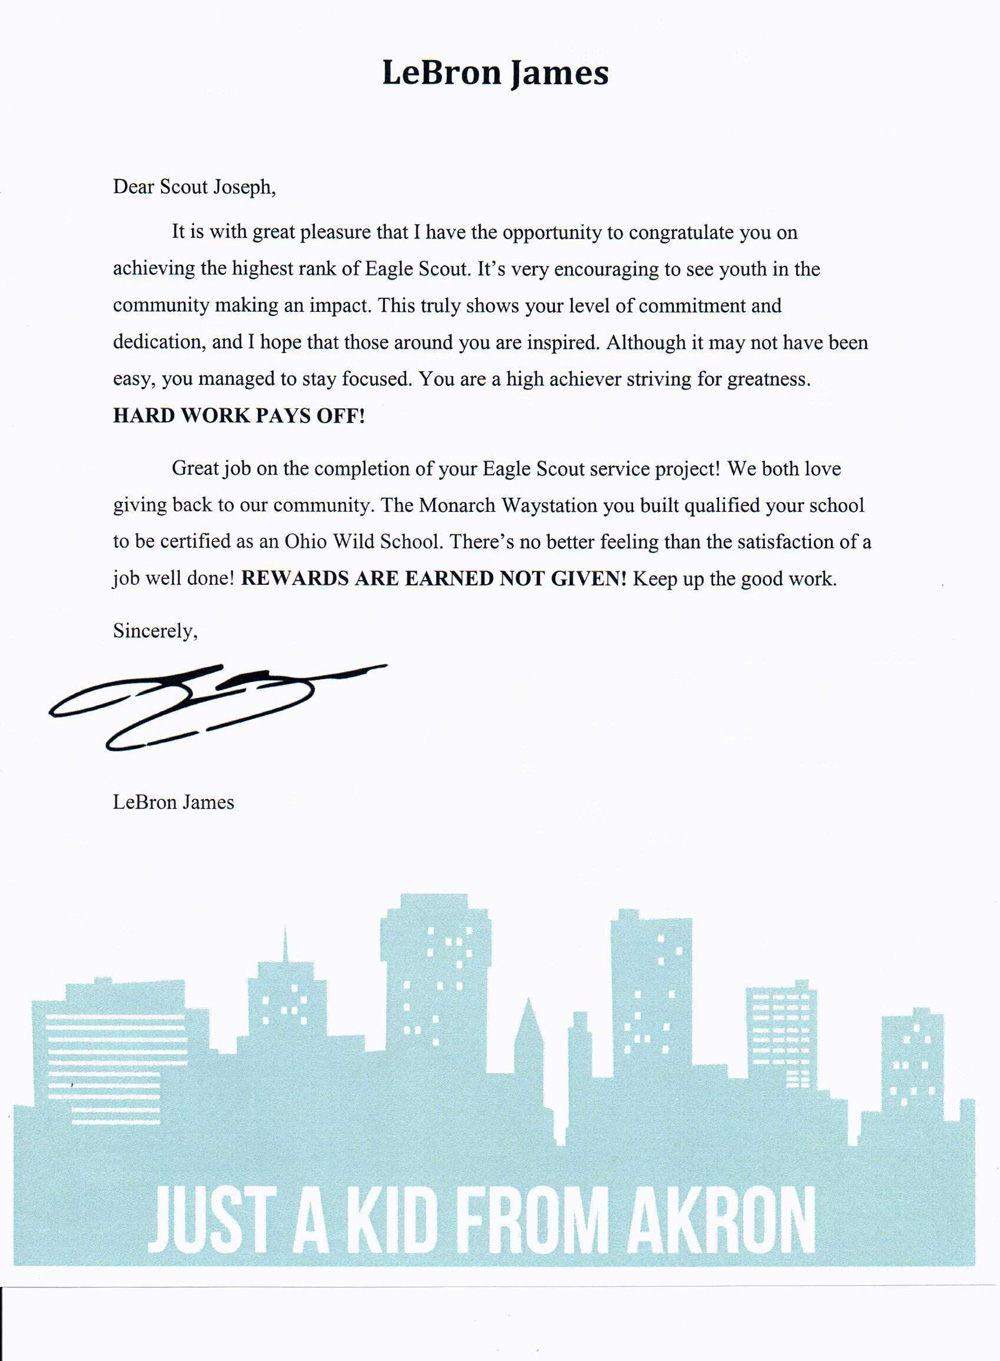 LeBron James Sent This Letter To A New Eagle Scout